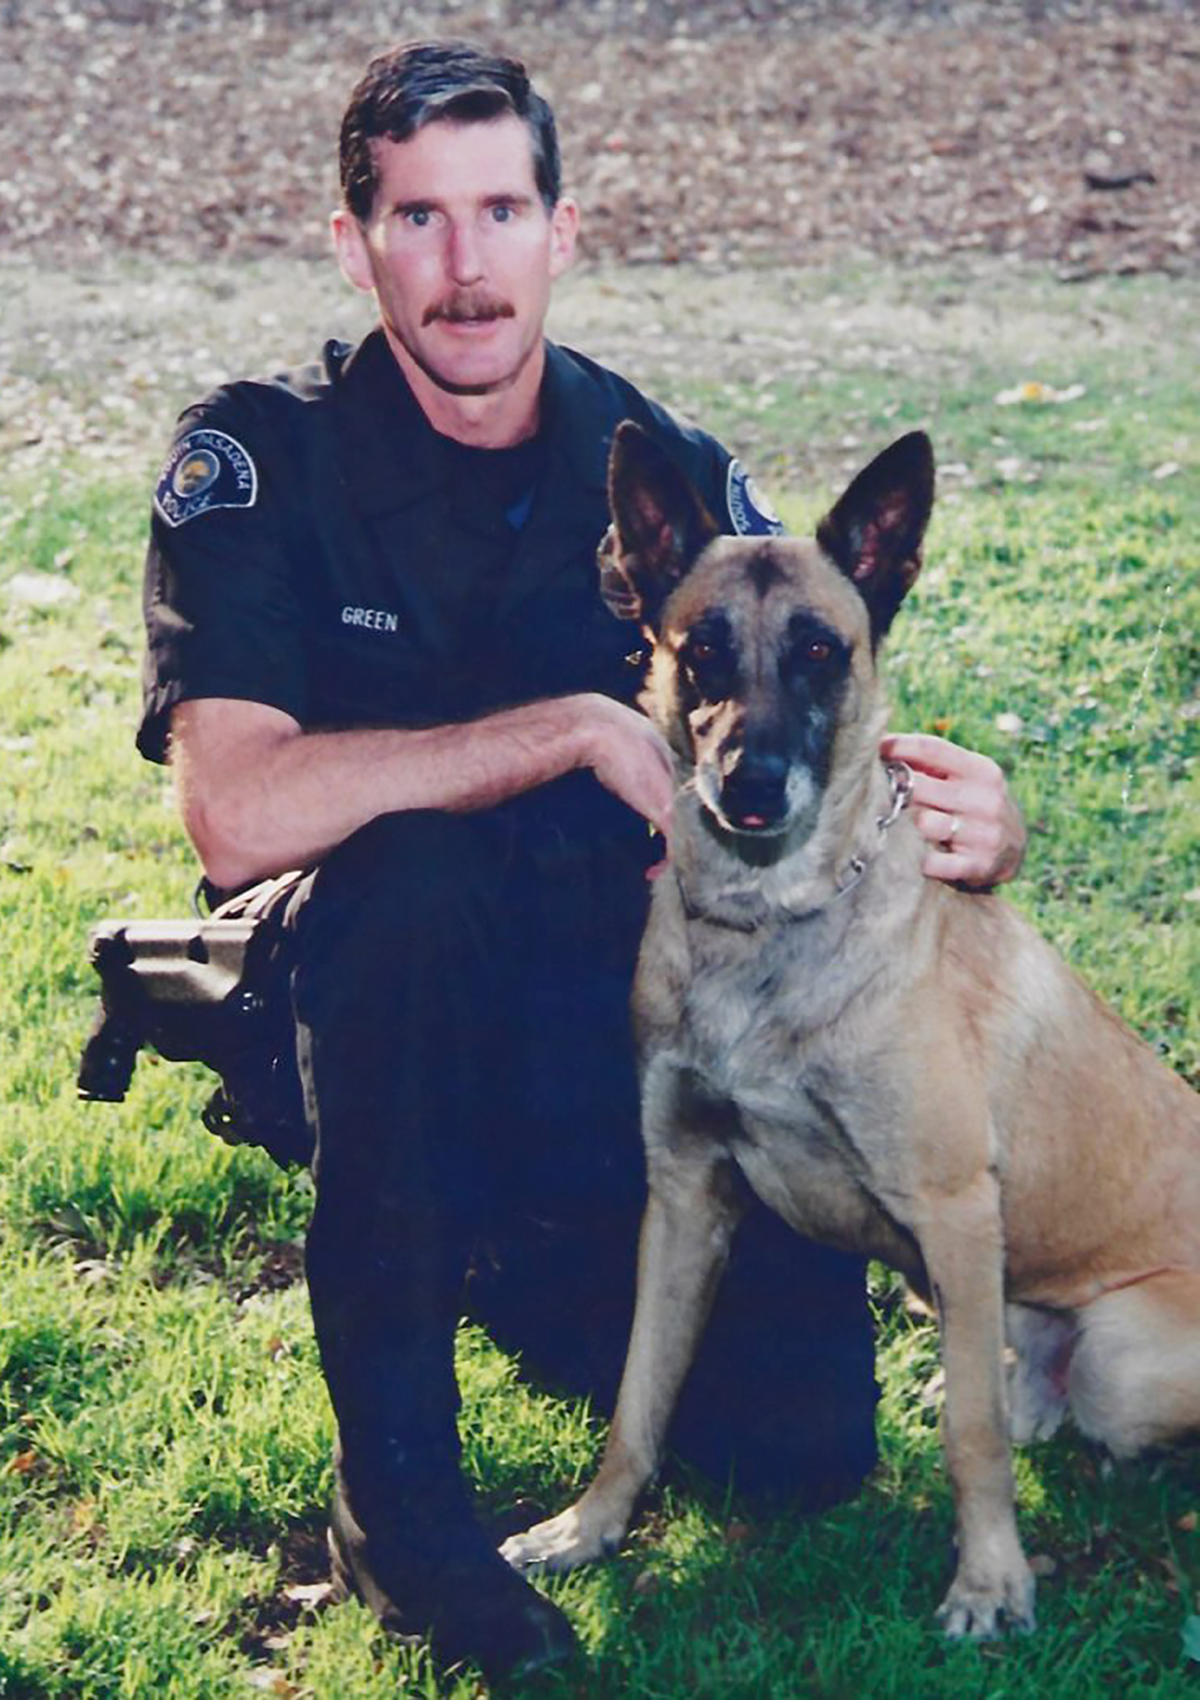 south-pasadena-news-06-04-2020-sppd-police-department-officer-timothy-patrick-green-lawsuit-city-appeal-termination-01